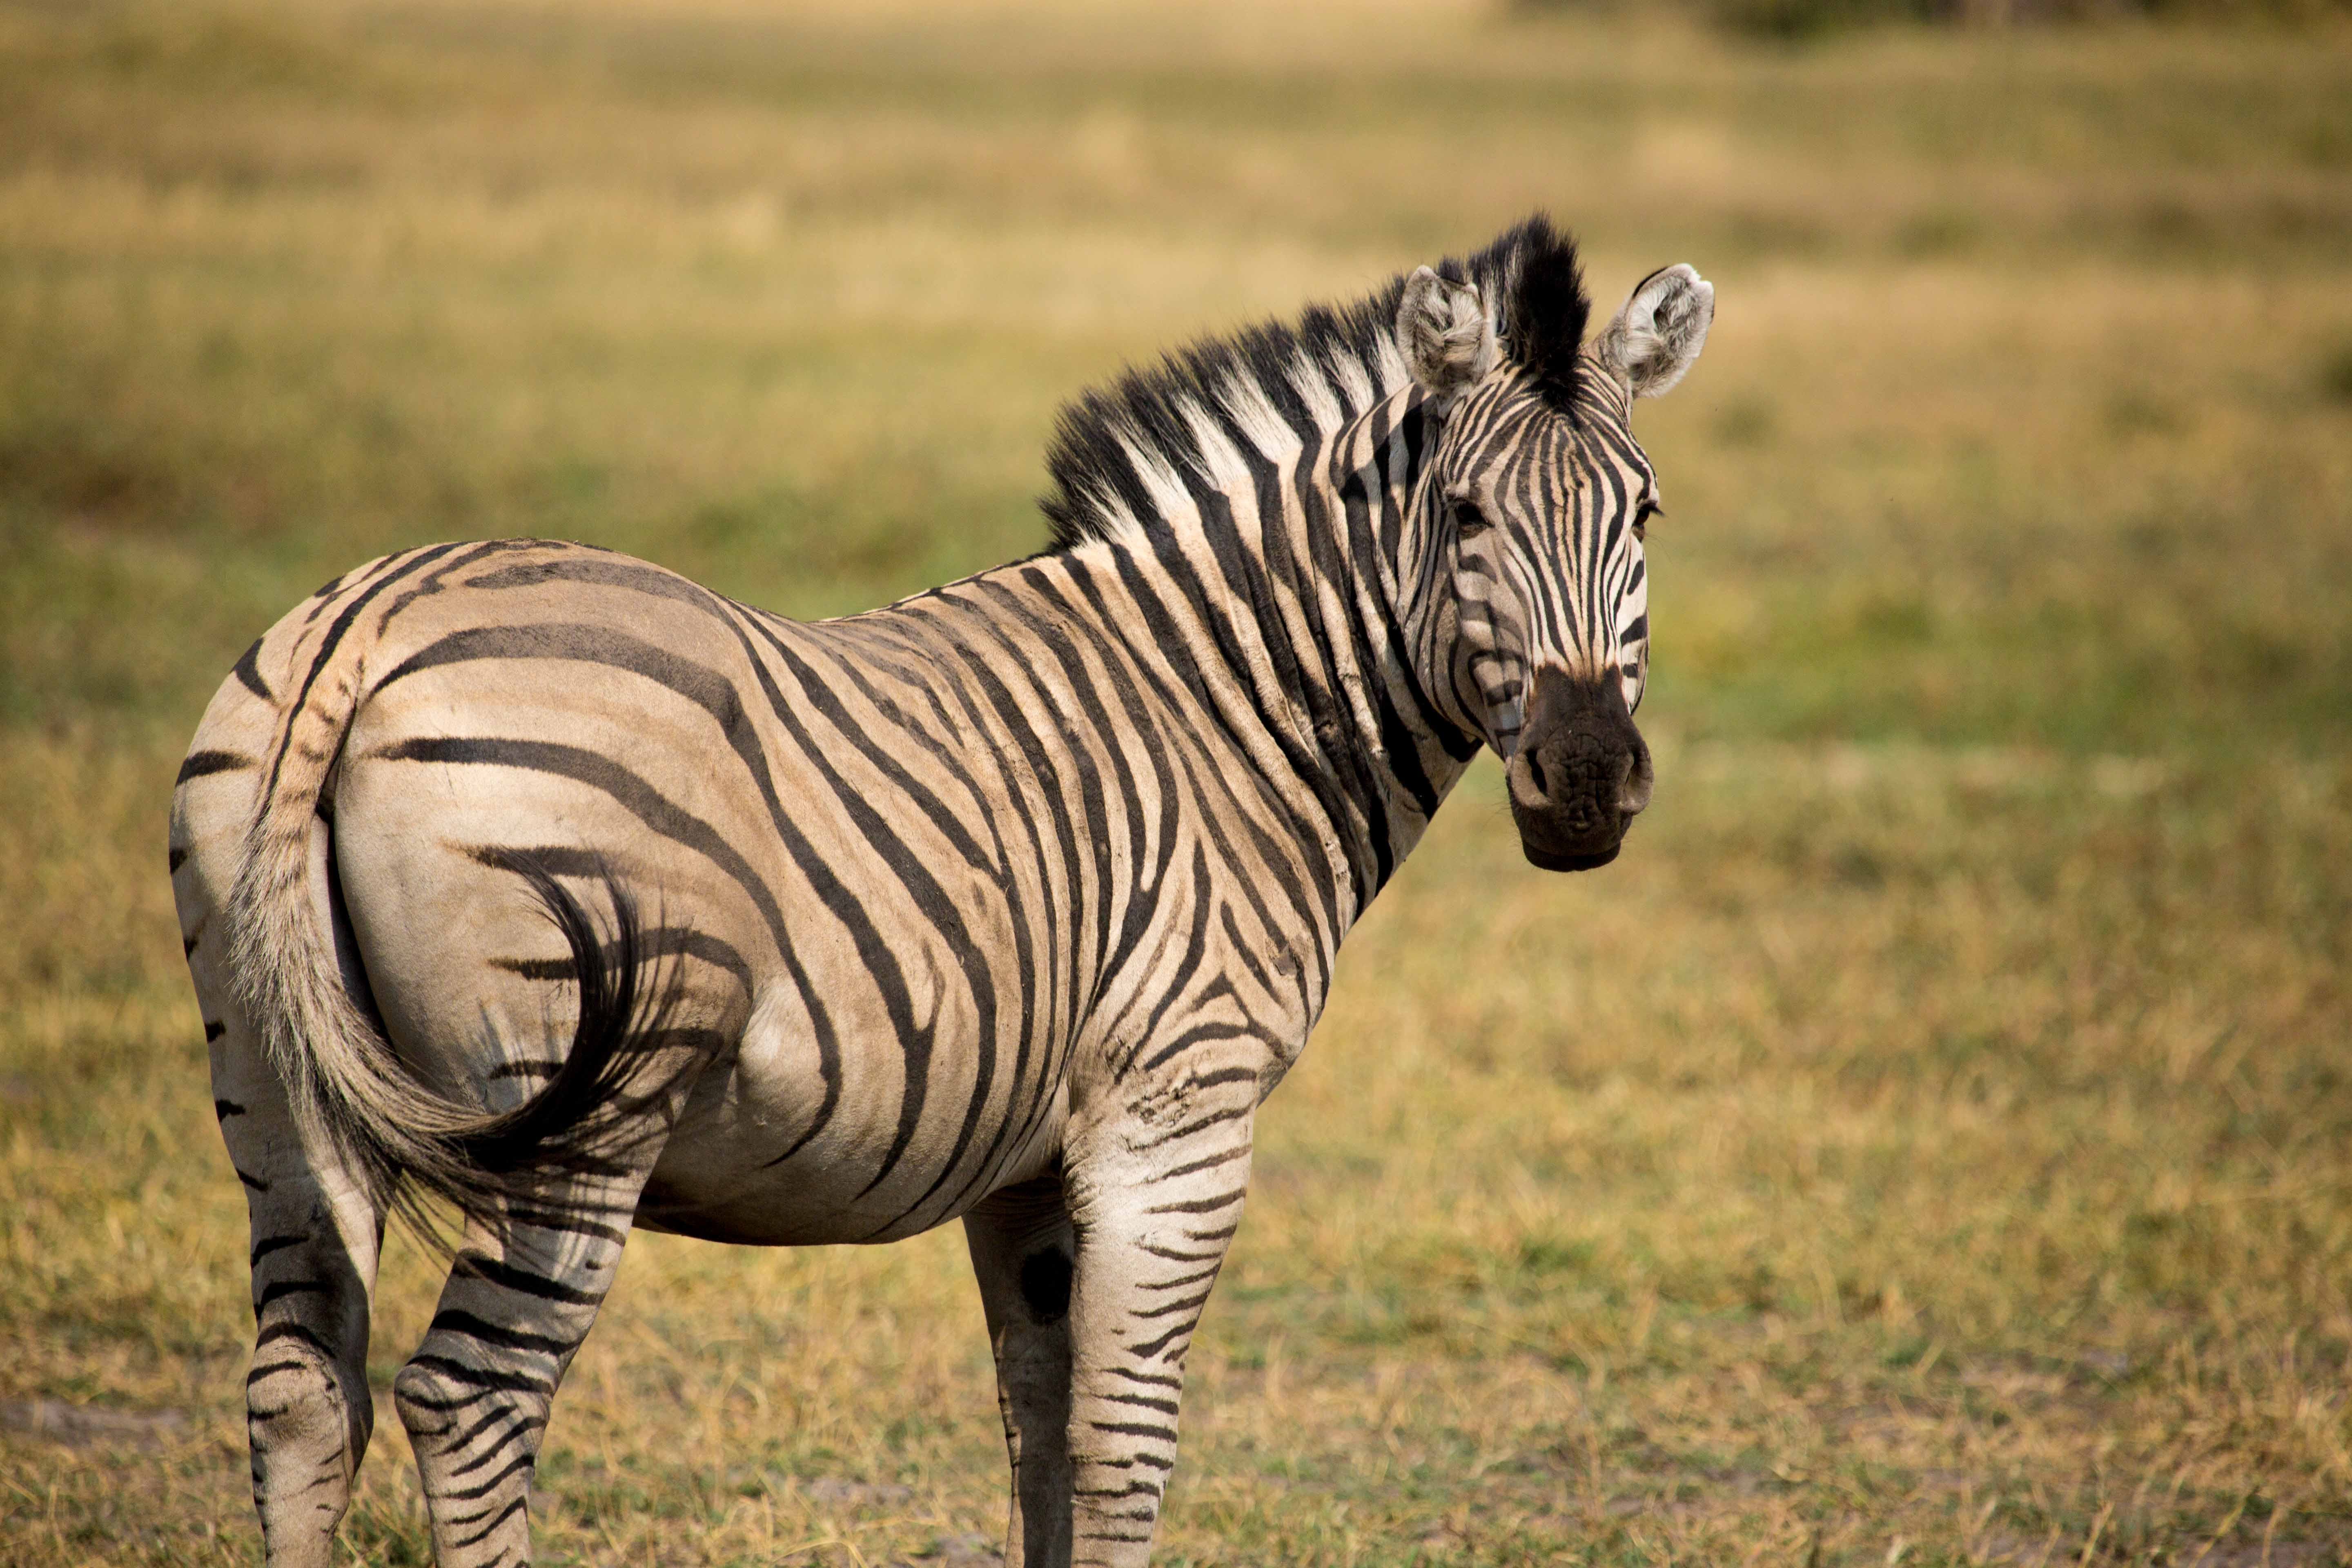 botswana zebra medium shot